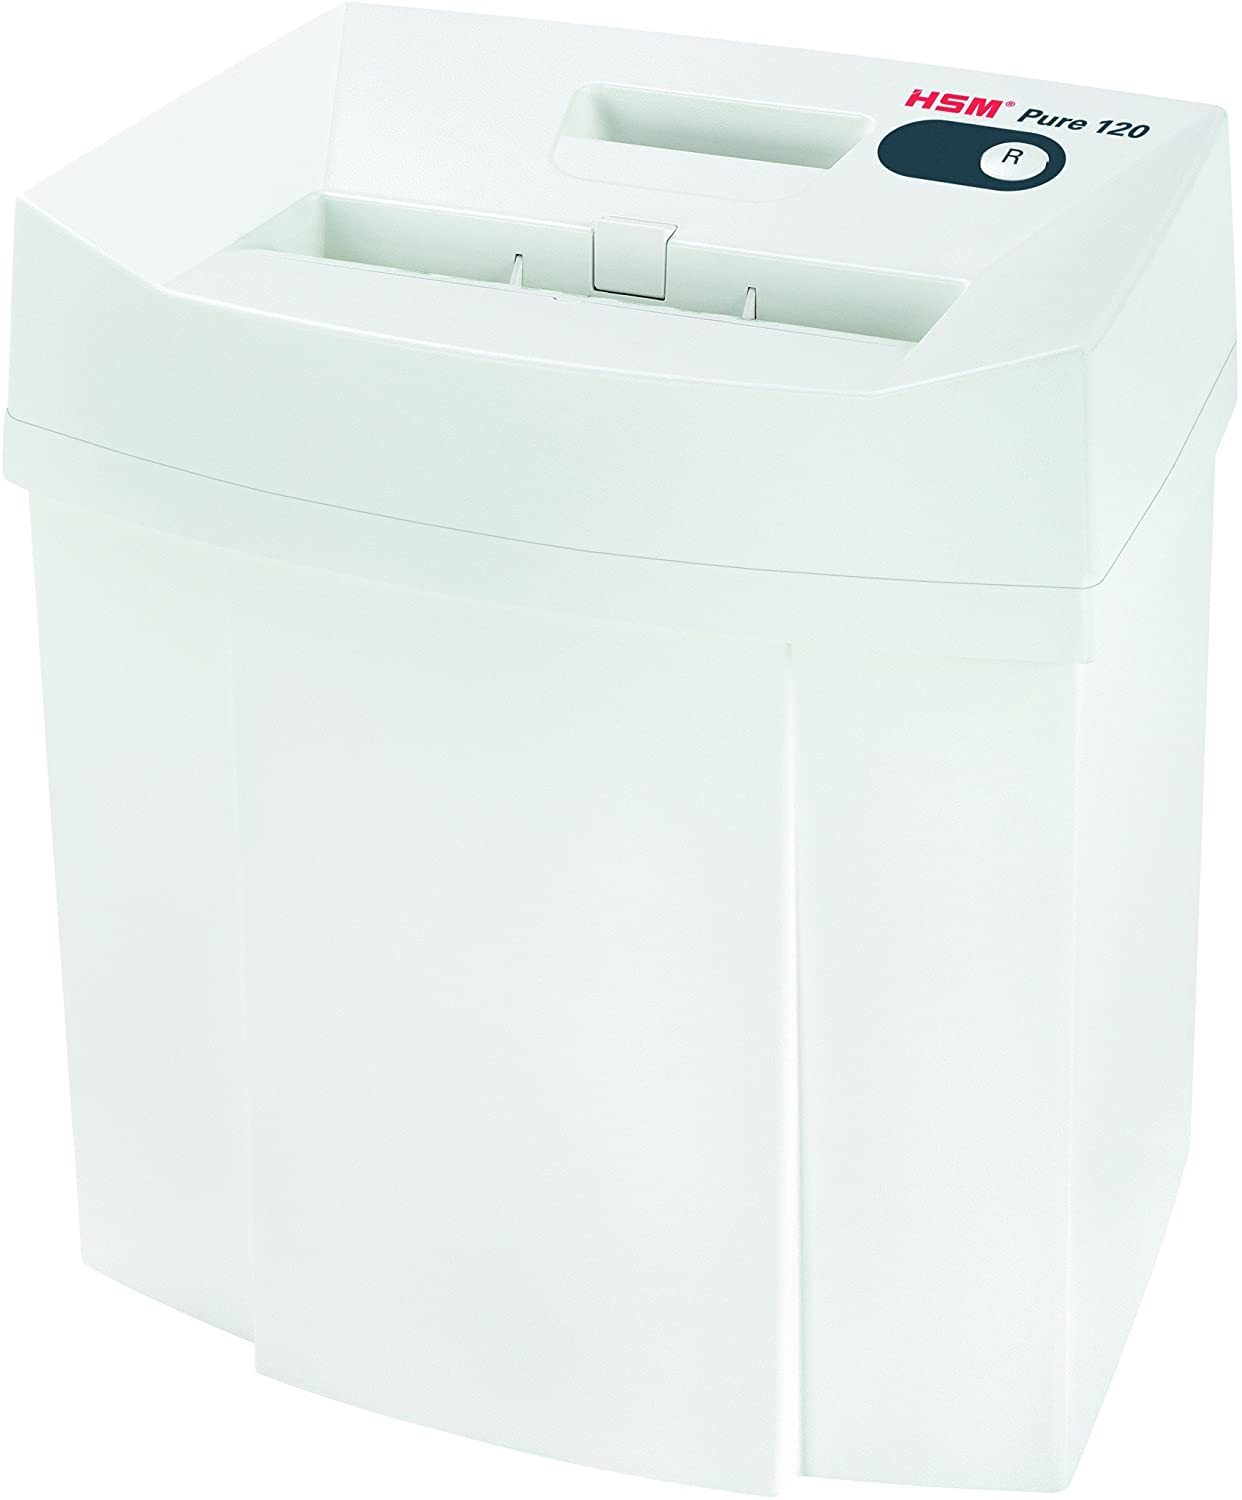 Pure 120 Strip-Cut Shredder; shreds up to 14 sheets; 5.3-gallon capacity